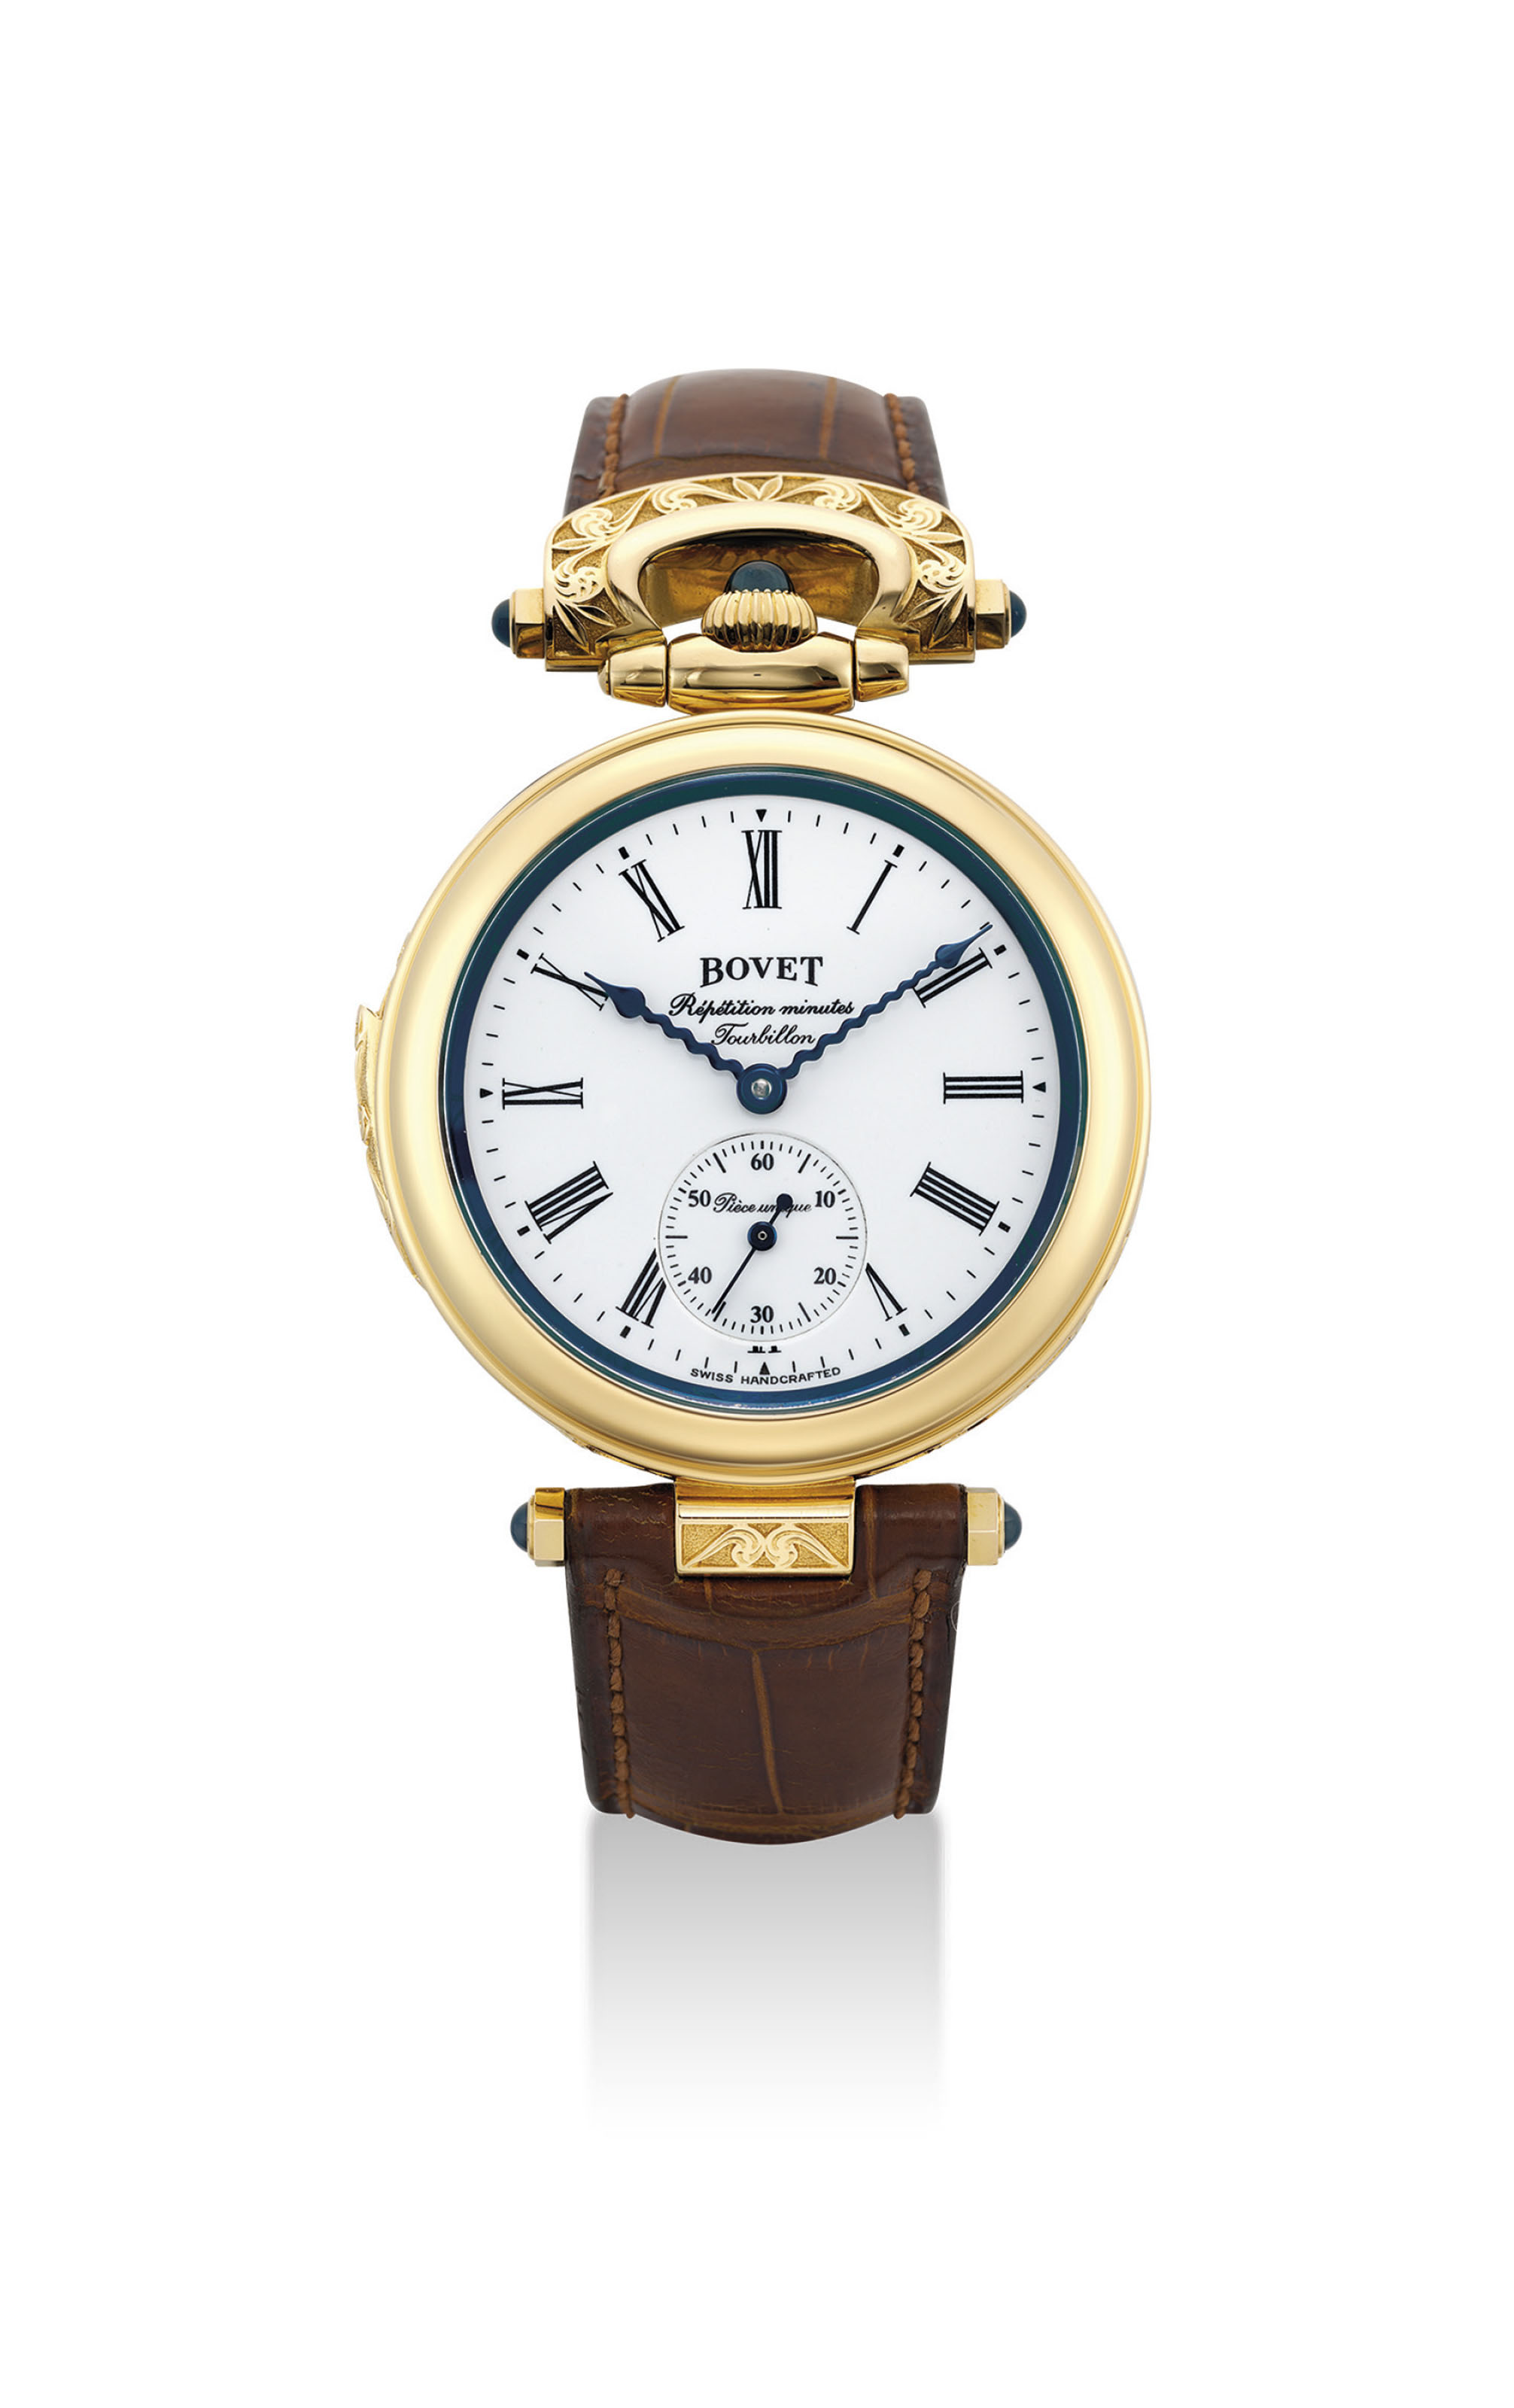 BOVET. A UNIQUE AND VERY FINE 18K PINK GOLD MINUTE REPEATING TOURBILLON WRISTWATCH WITH ENAMEL DIAL